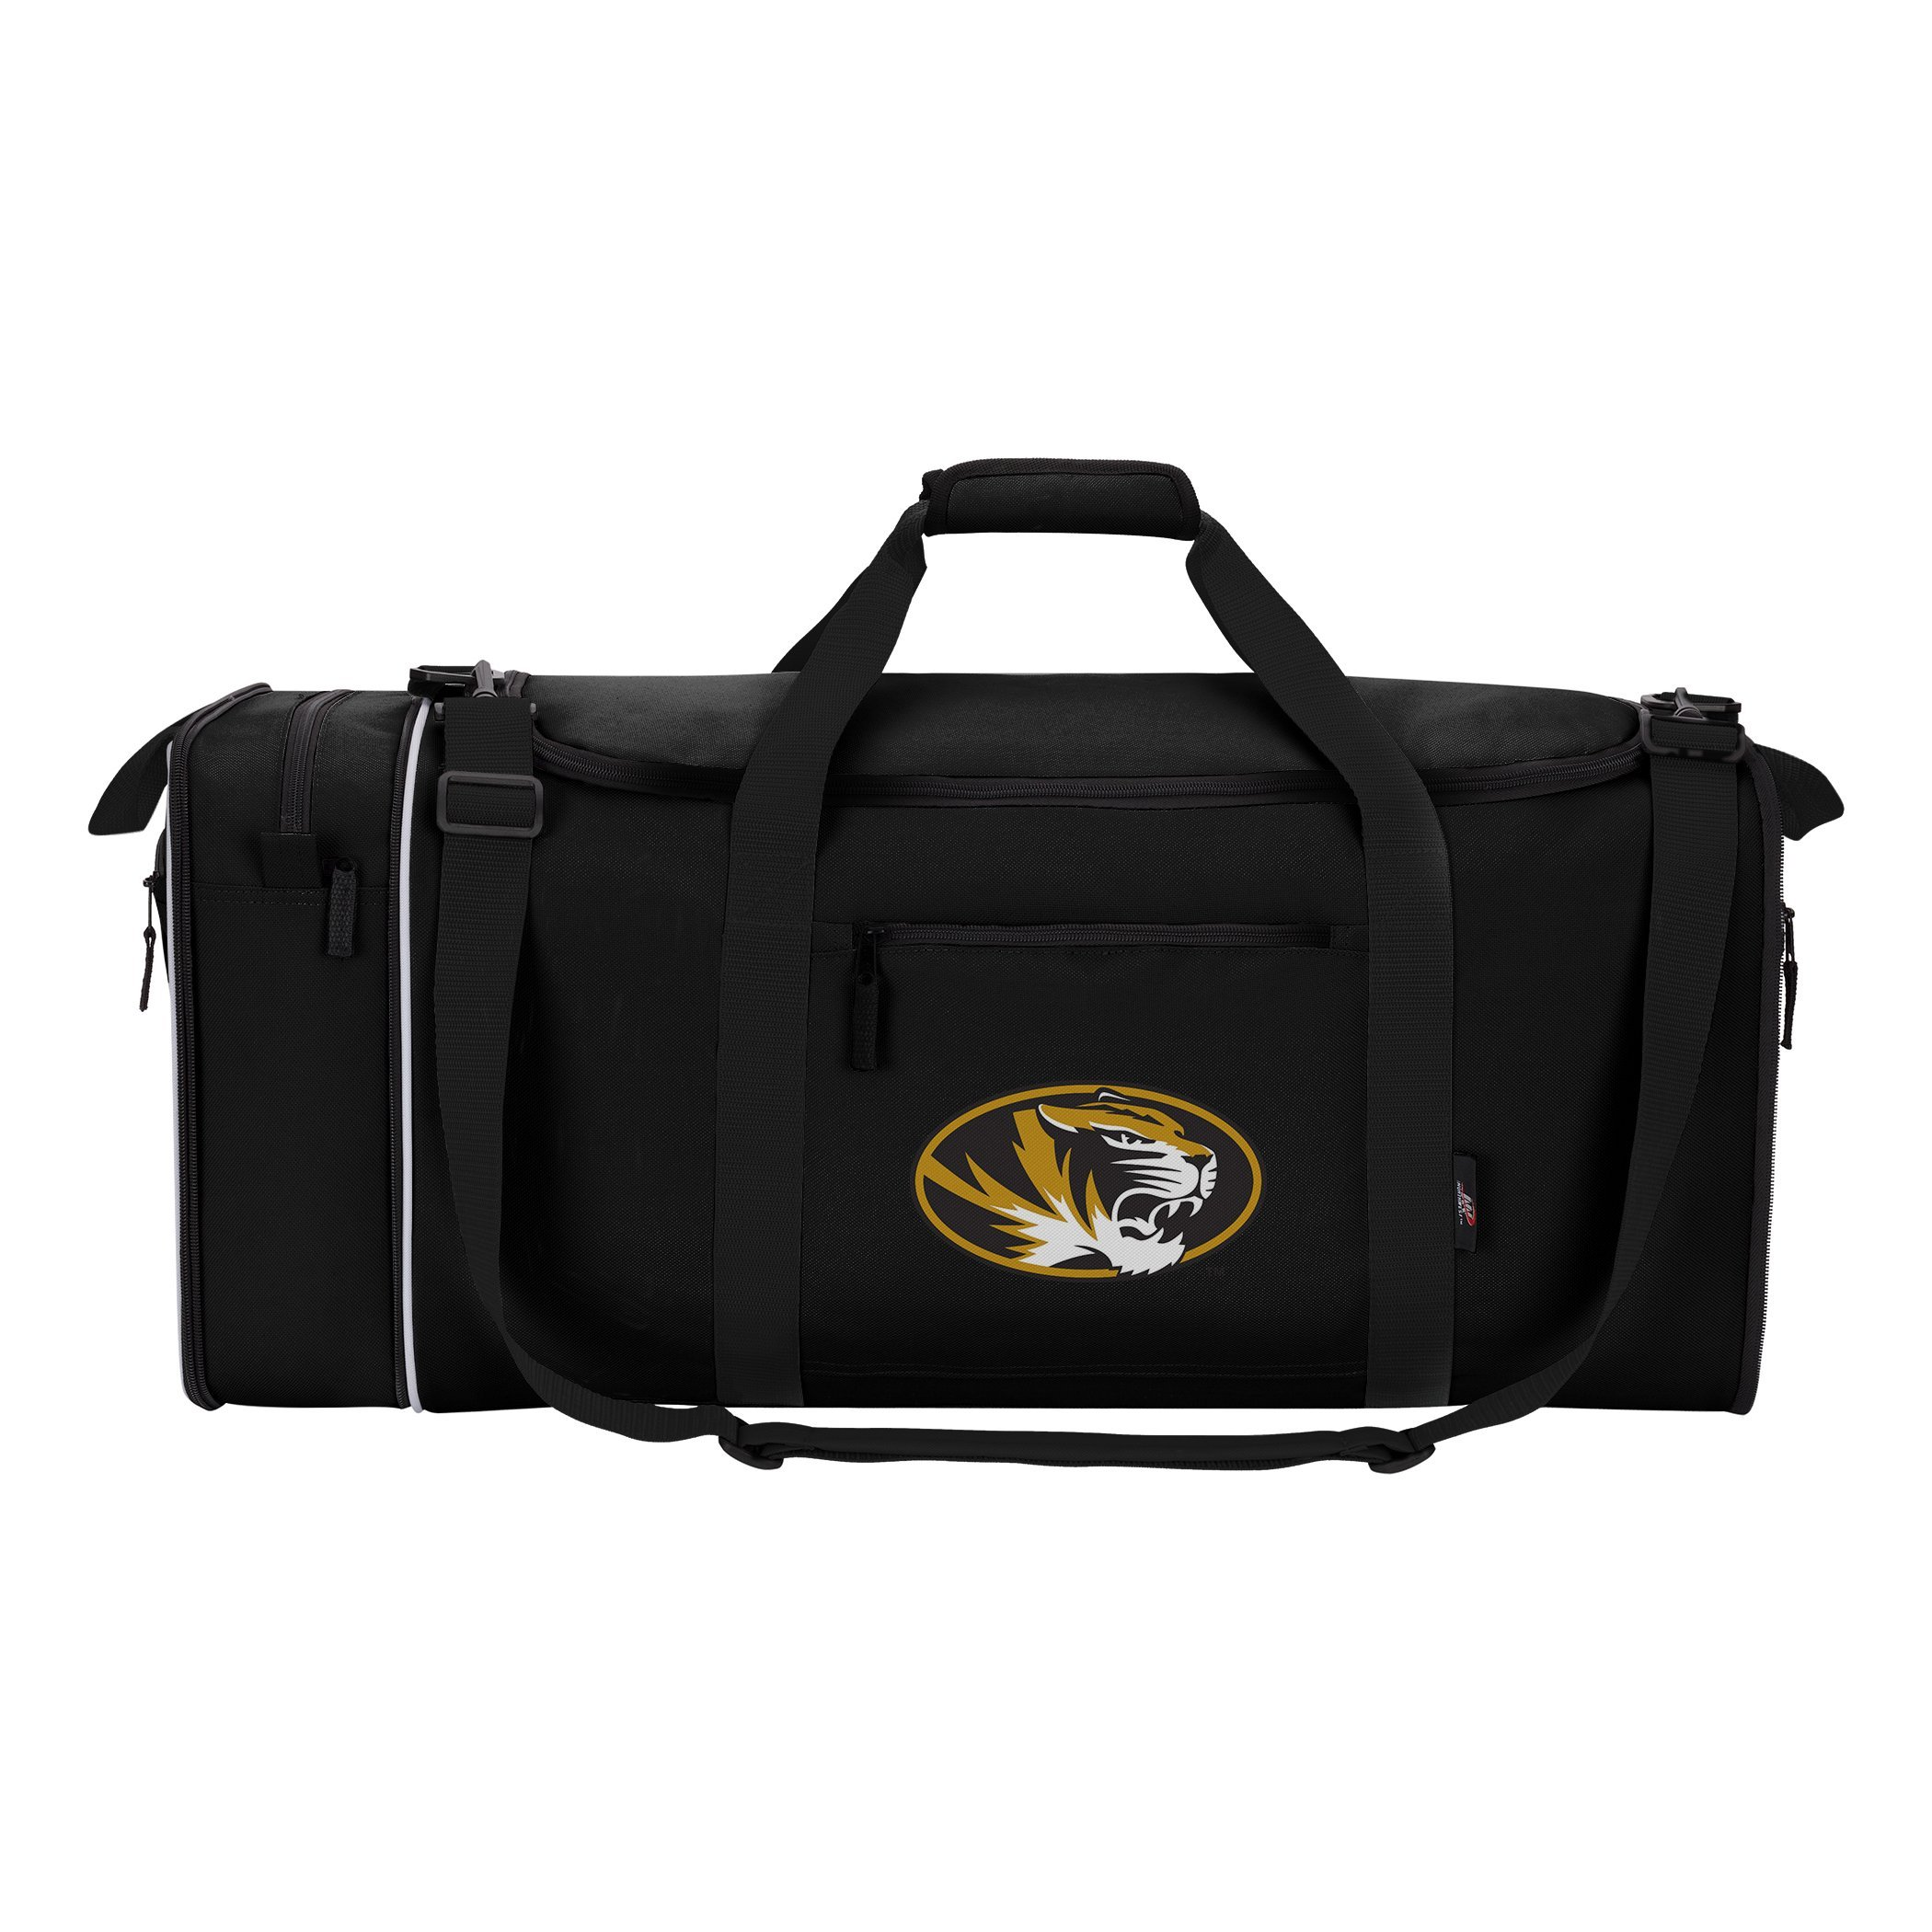 Officially Licensed NCAA Missouri Tigers Steal Duffel Bag by The Northwest Company (Image #1)